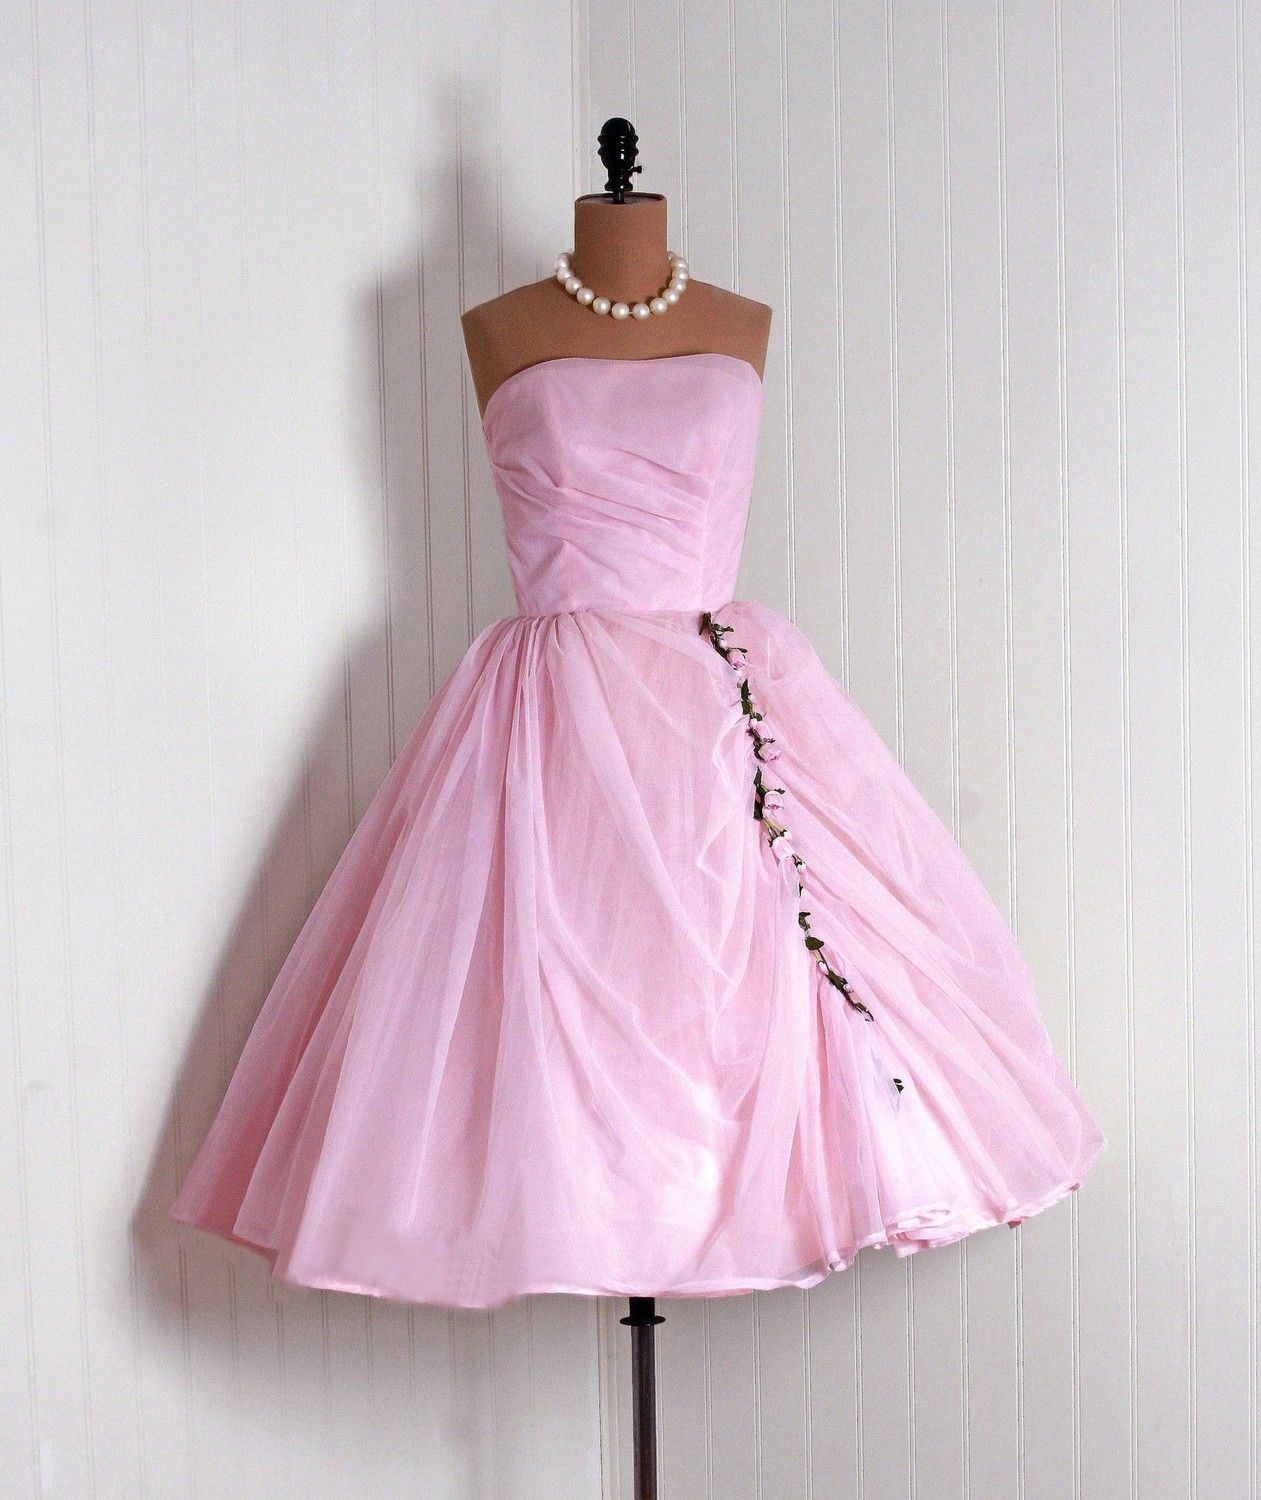 Pin by Theresa Causey on pink Vintage 1950s dresses